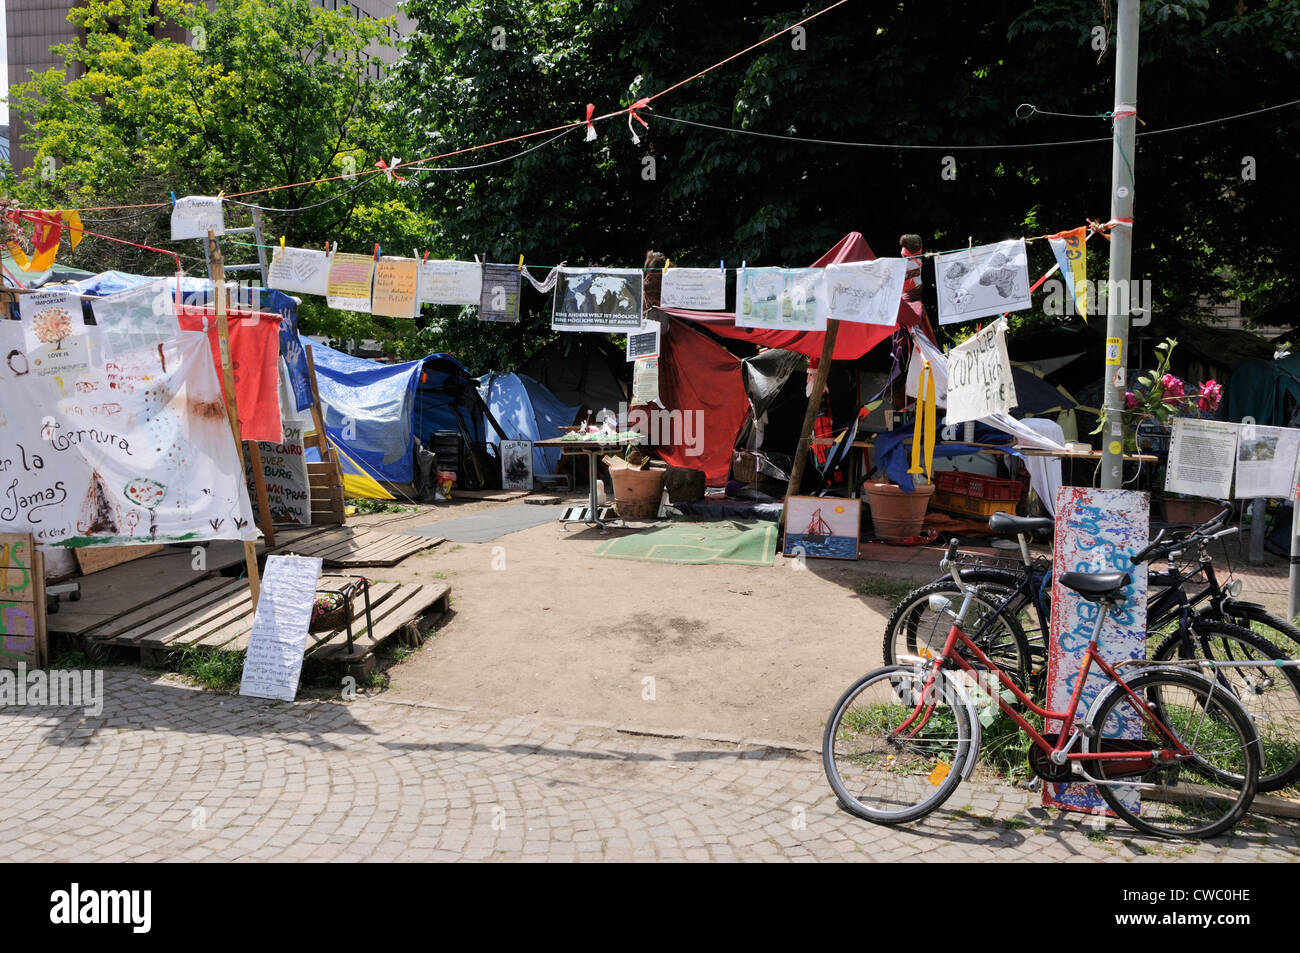 Occupy Frankfurt entrance outside the European Central Bank, Germany. - Stock Image